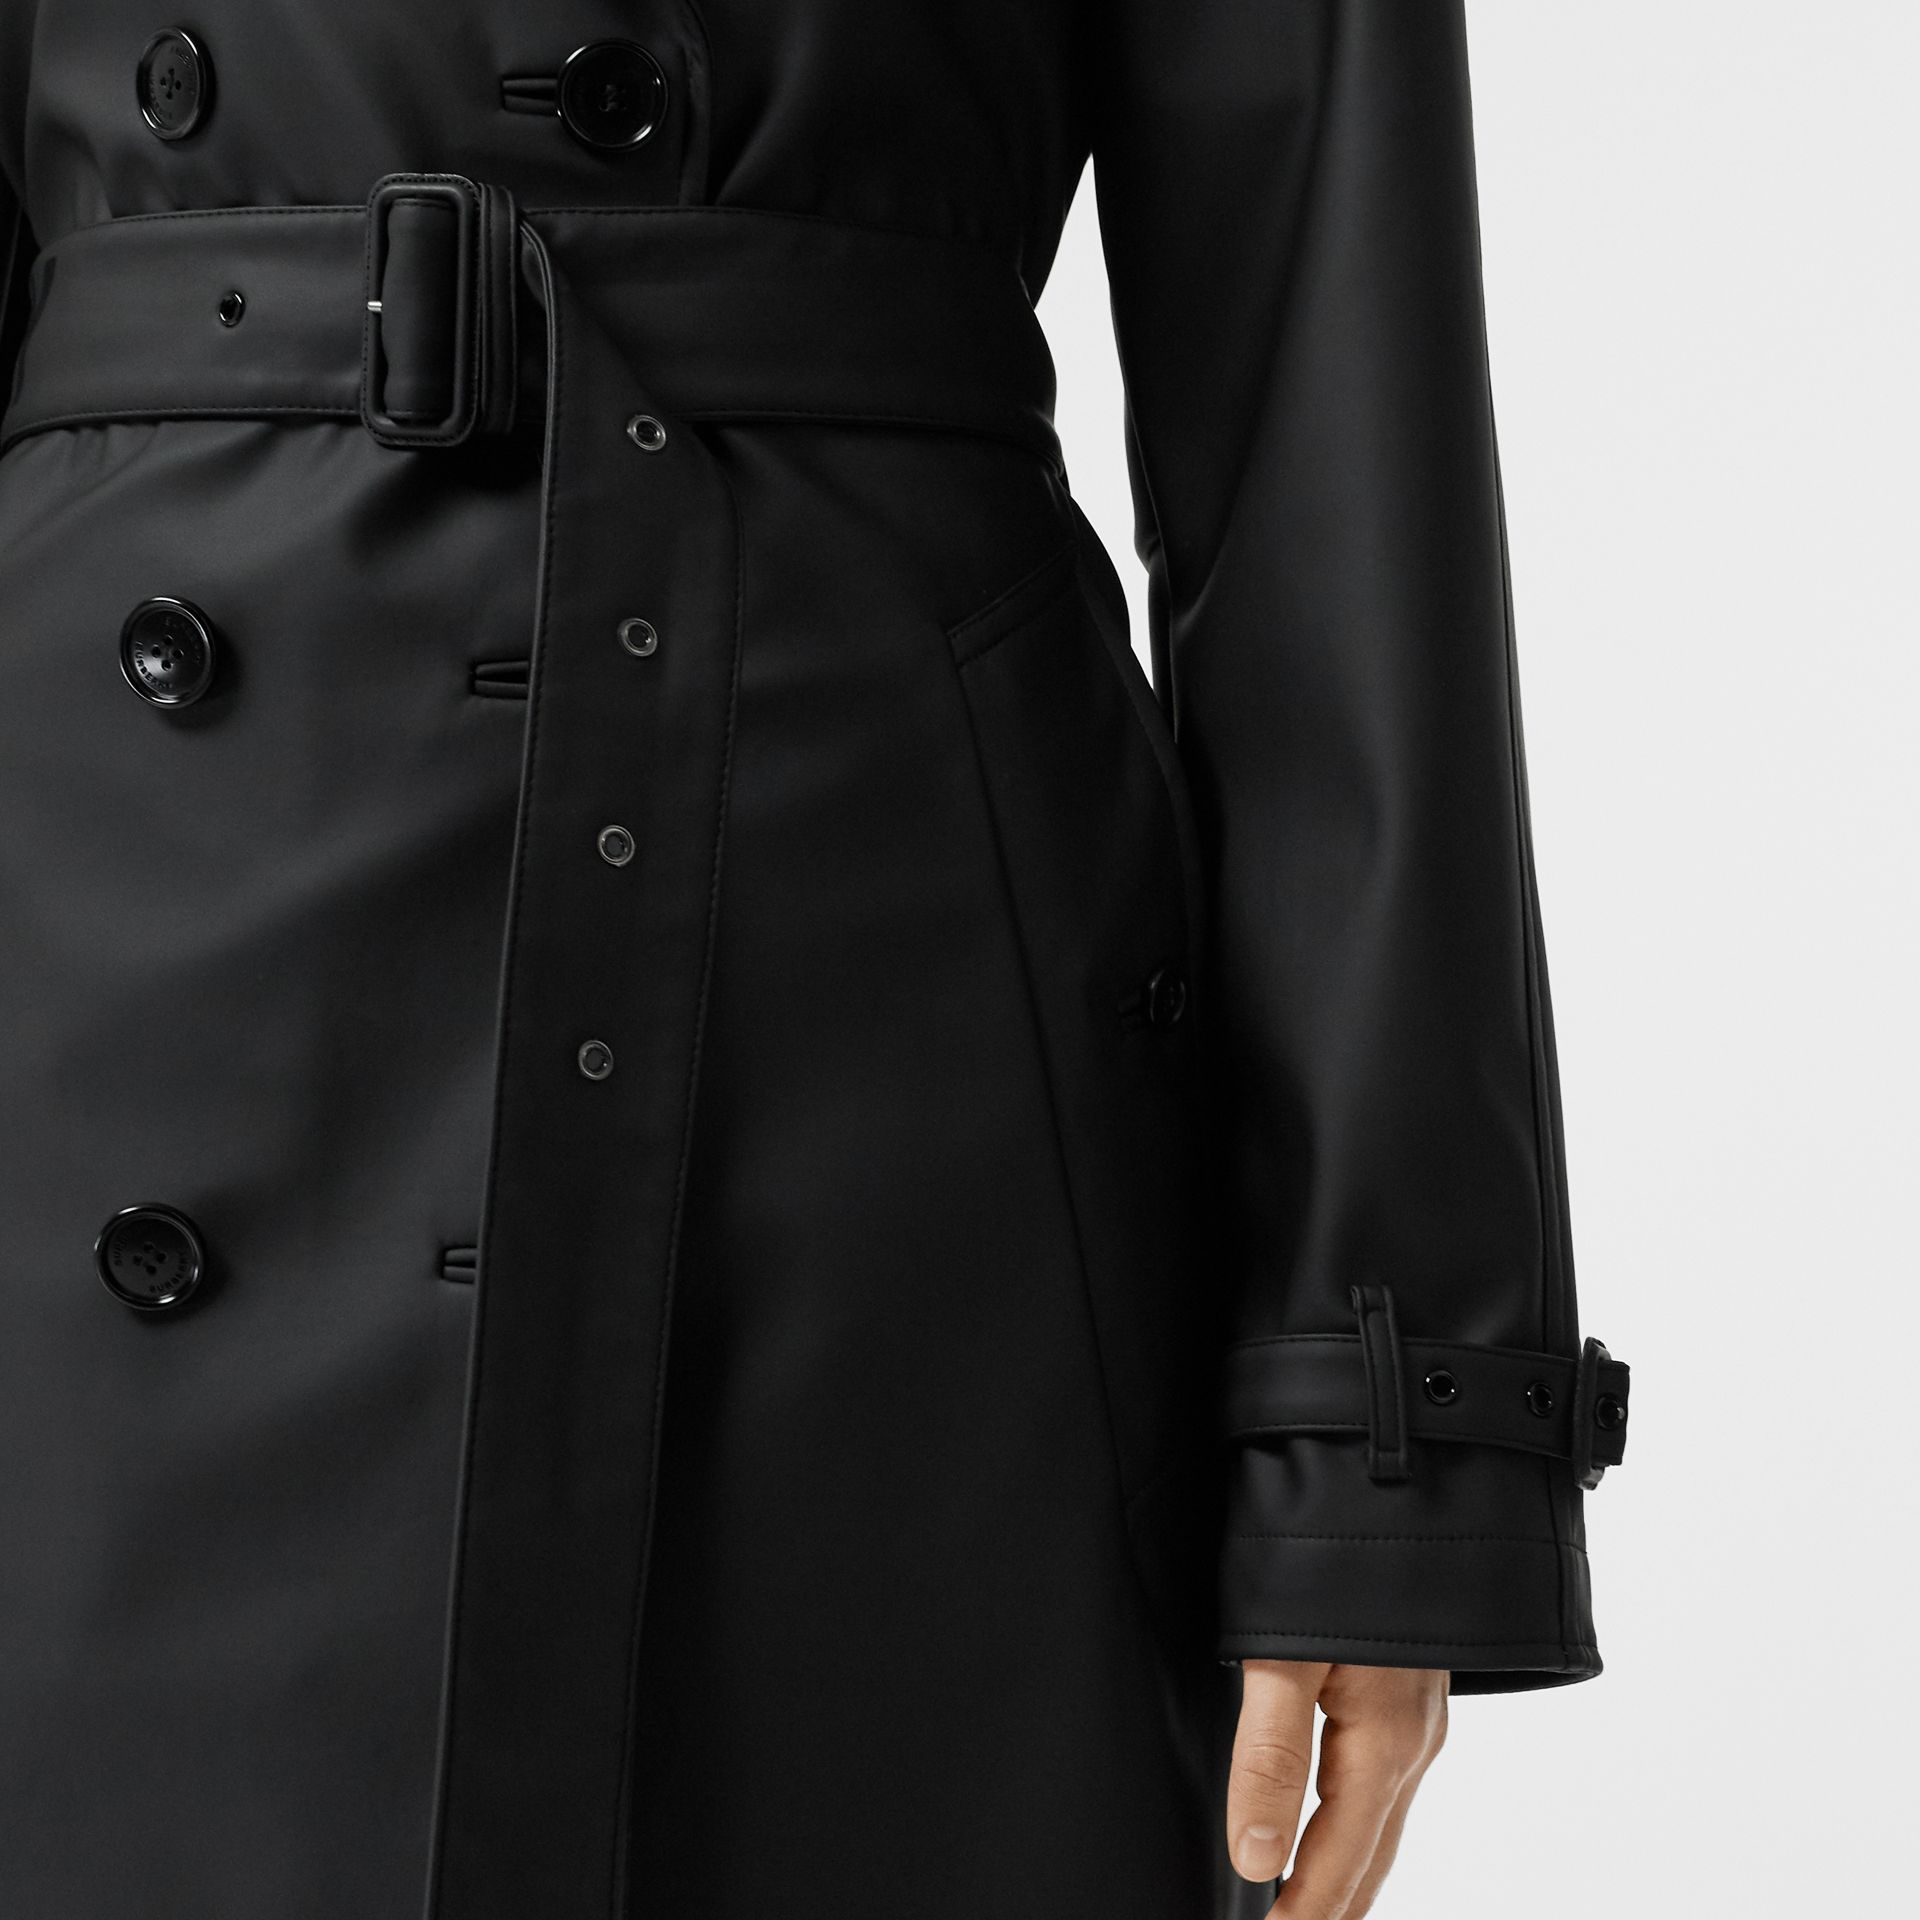 Logo Detail Showerproof Trench Coat in Black/white - Women | Burberry - gallery image 4